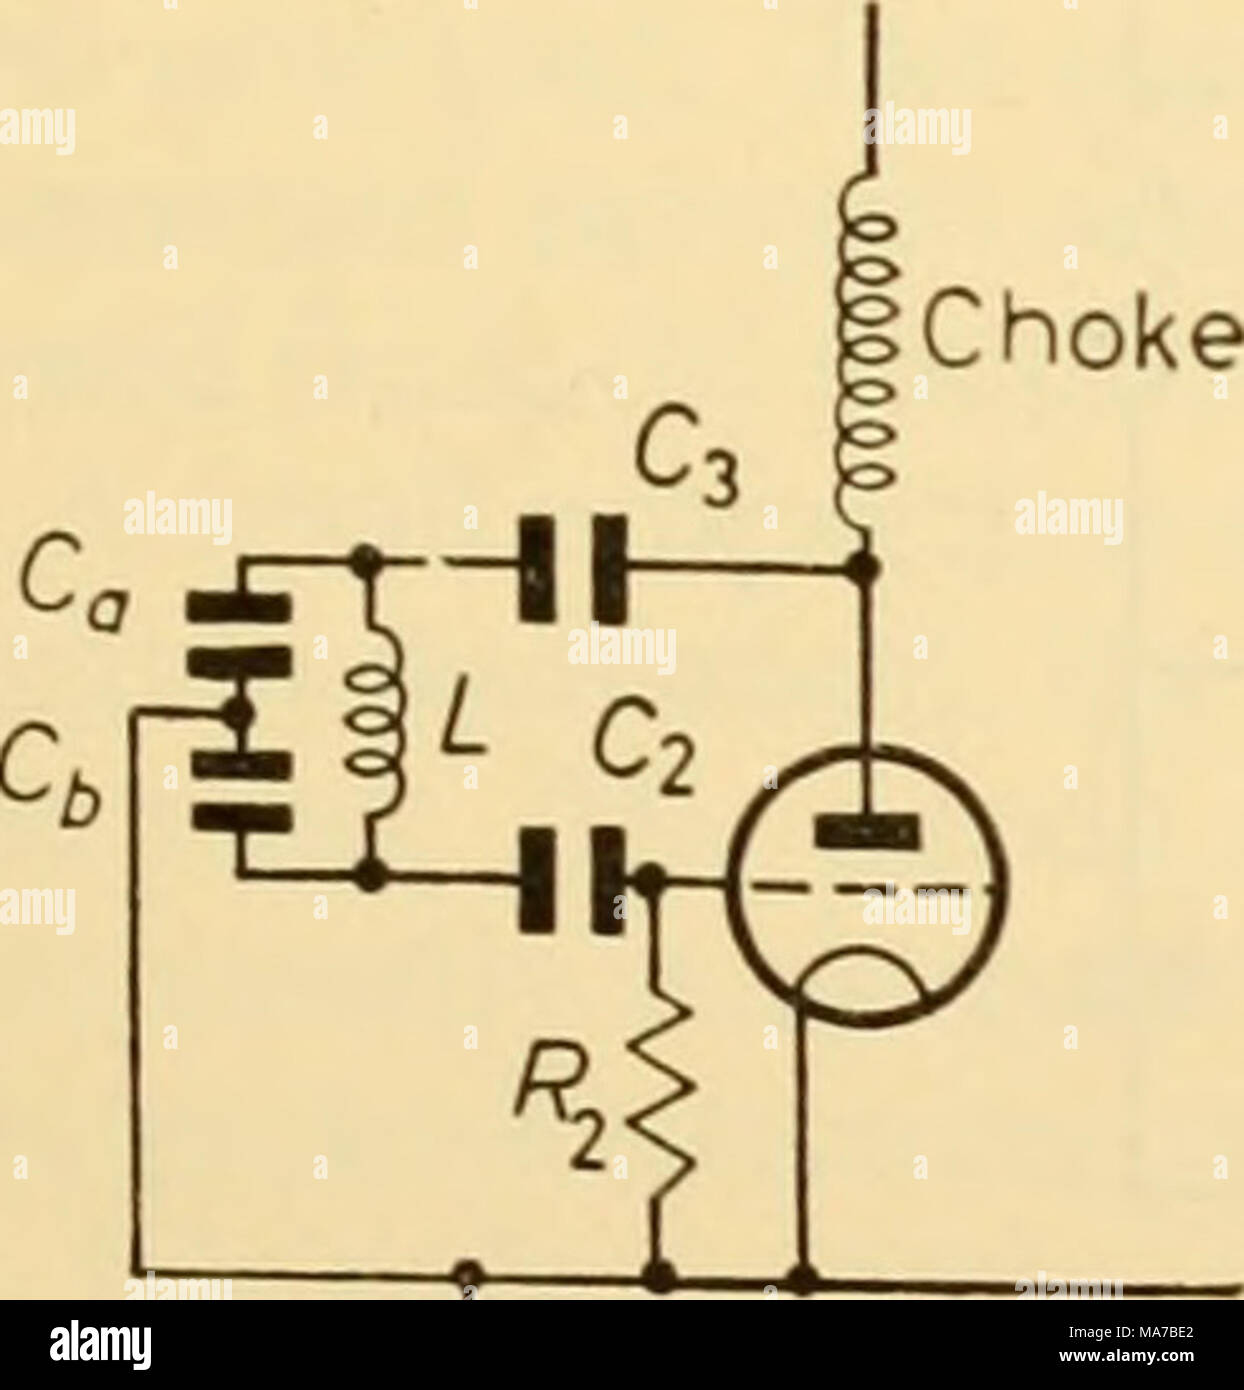 Figure 8 Circuit Stock Photos Images Alamy Yx Wiring Diagram Electronic Apparatus For Biological Research I